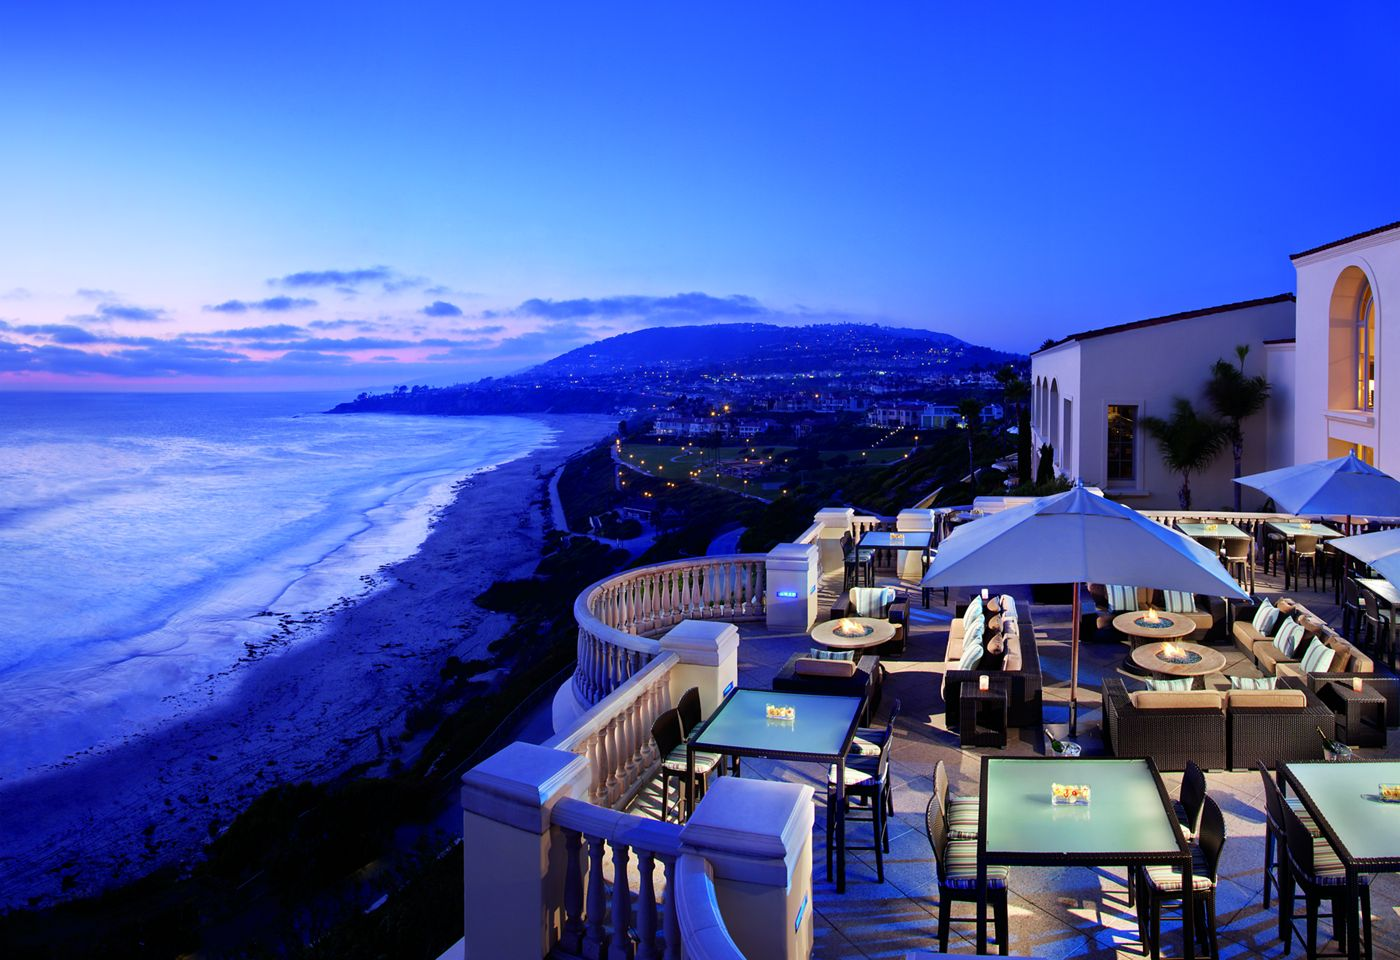 12 Restaurants In Southern California With Incredible Views